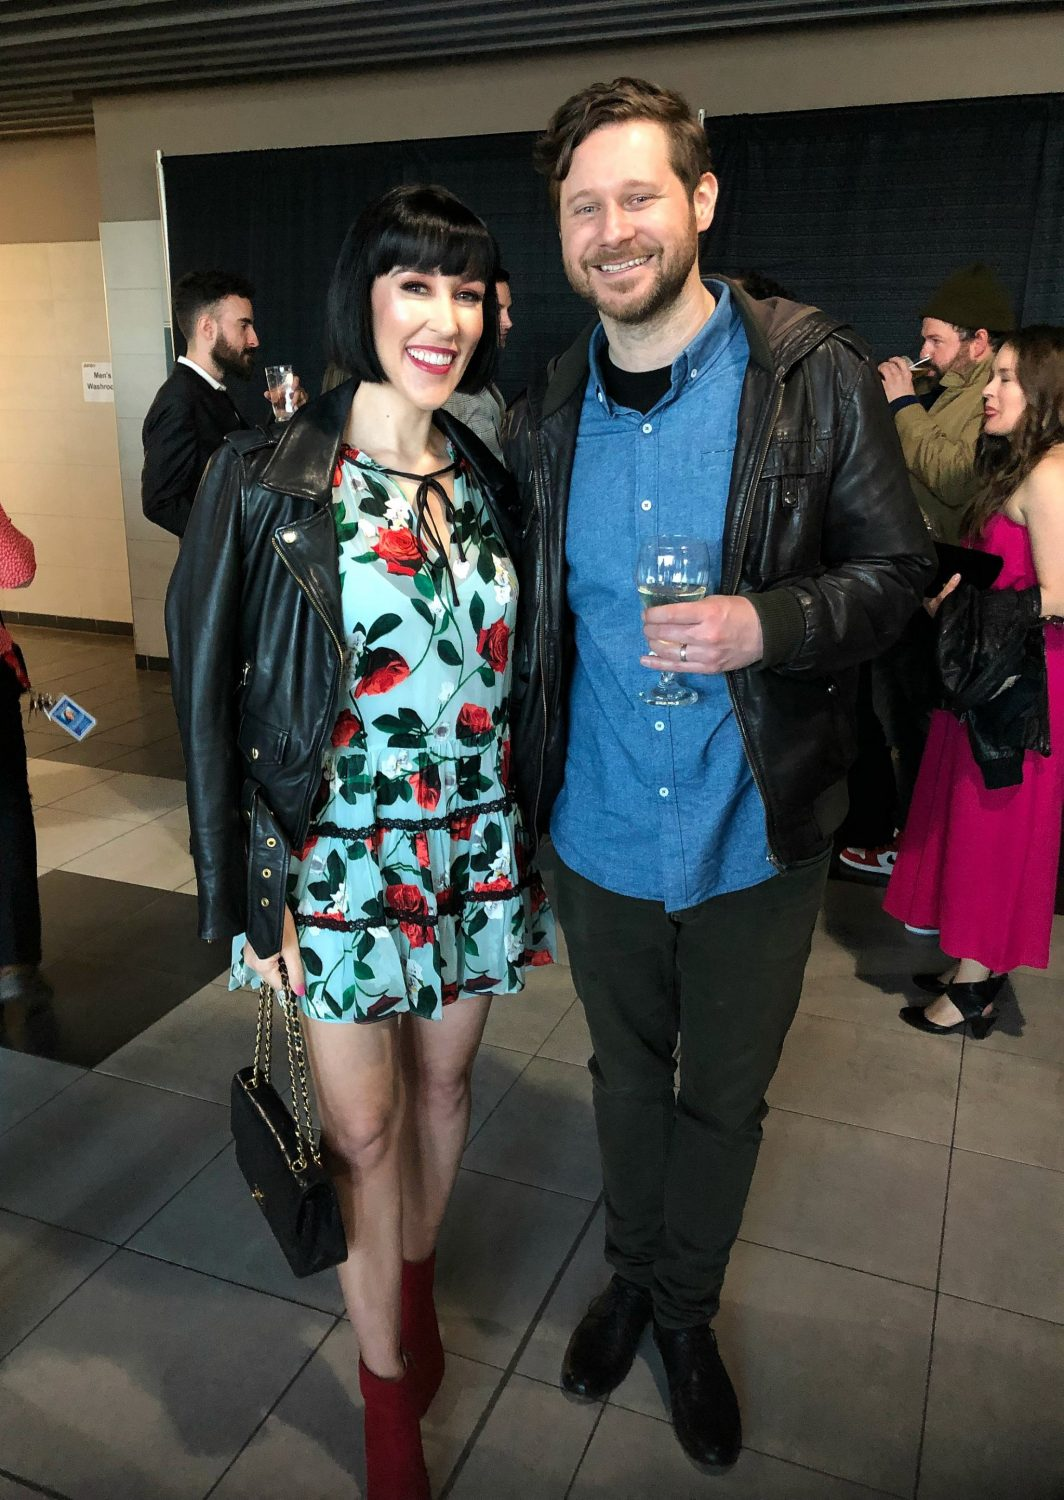 Dan Mangan & The Pink Millennial at the 2019 JUNO Awards